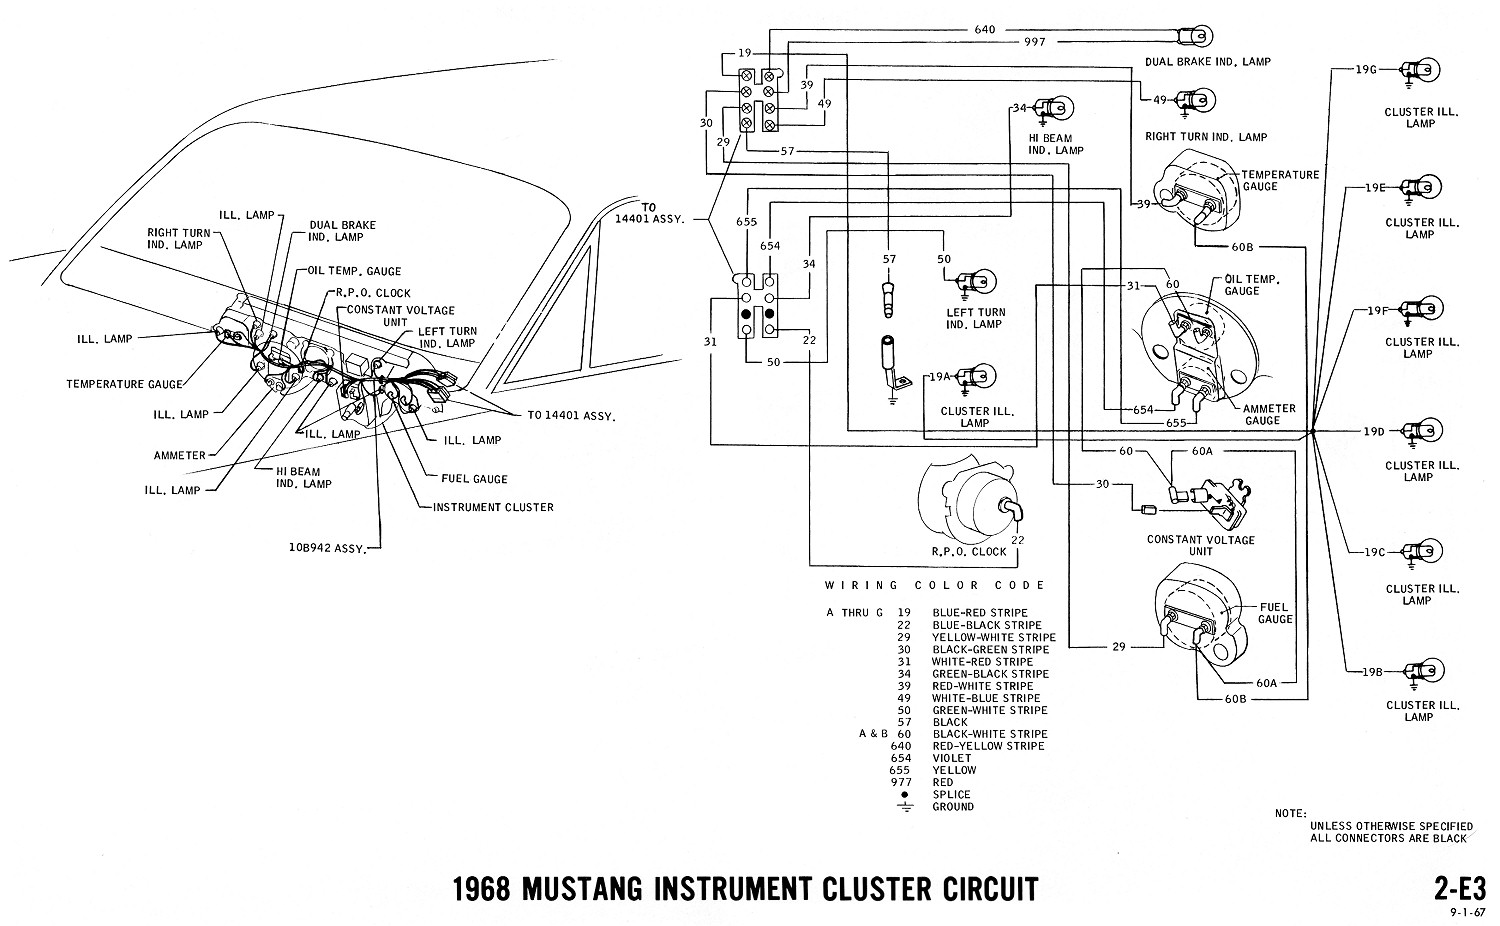 1967 mustang clock wiring all wiring diagram rh 14 excd isabel in australien de